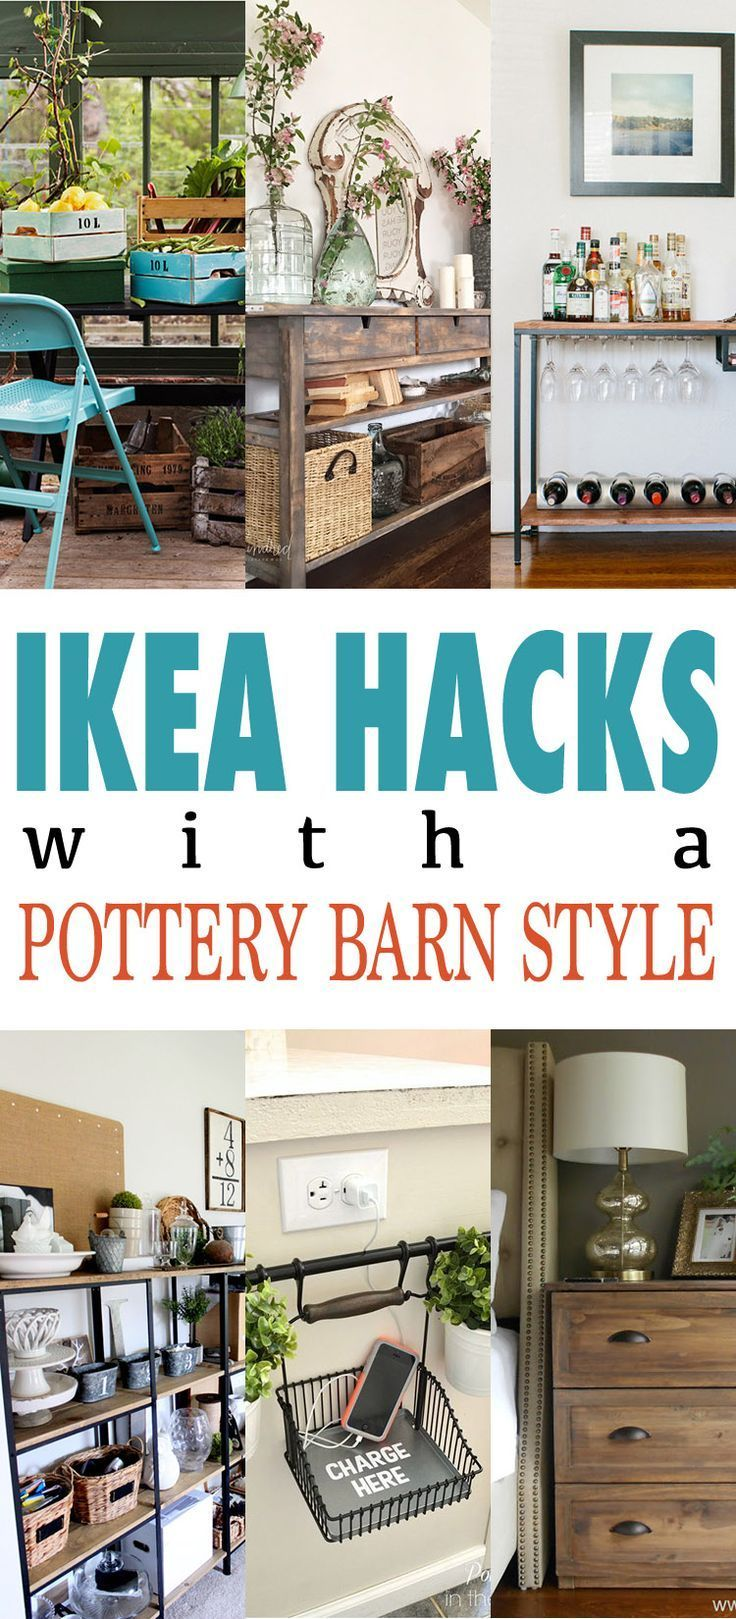 Ikea Hacks with a Pottery Barn Style | Decoracion interior, Estudios ...